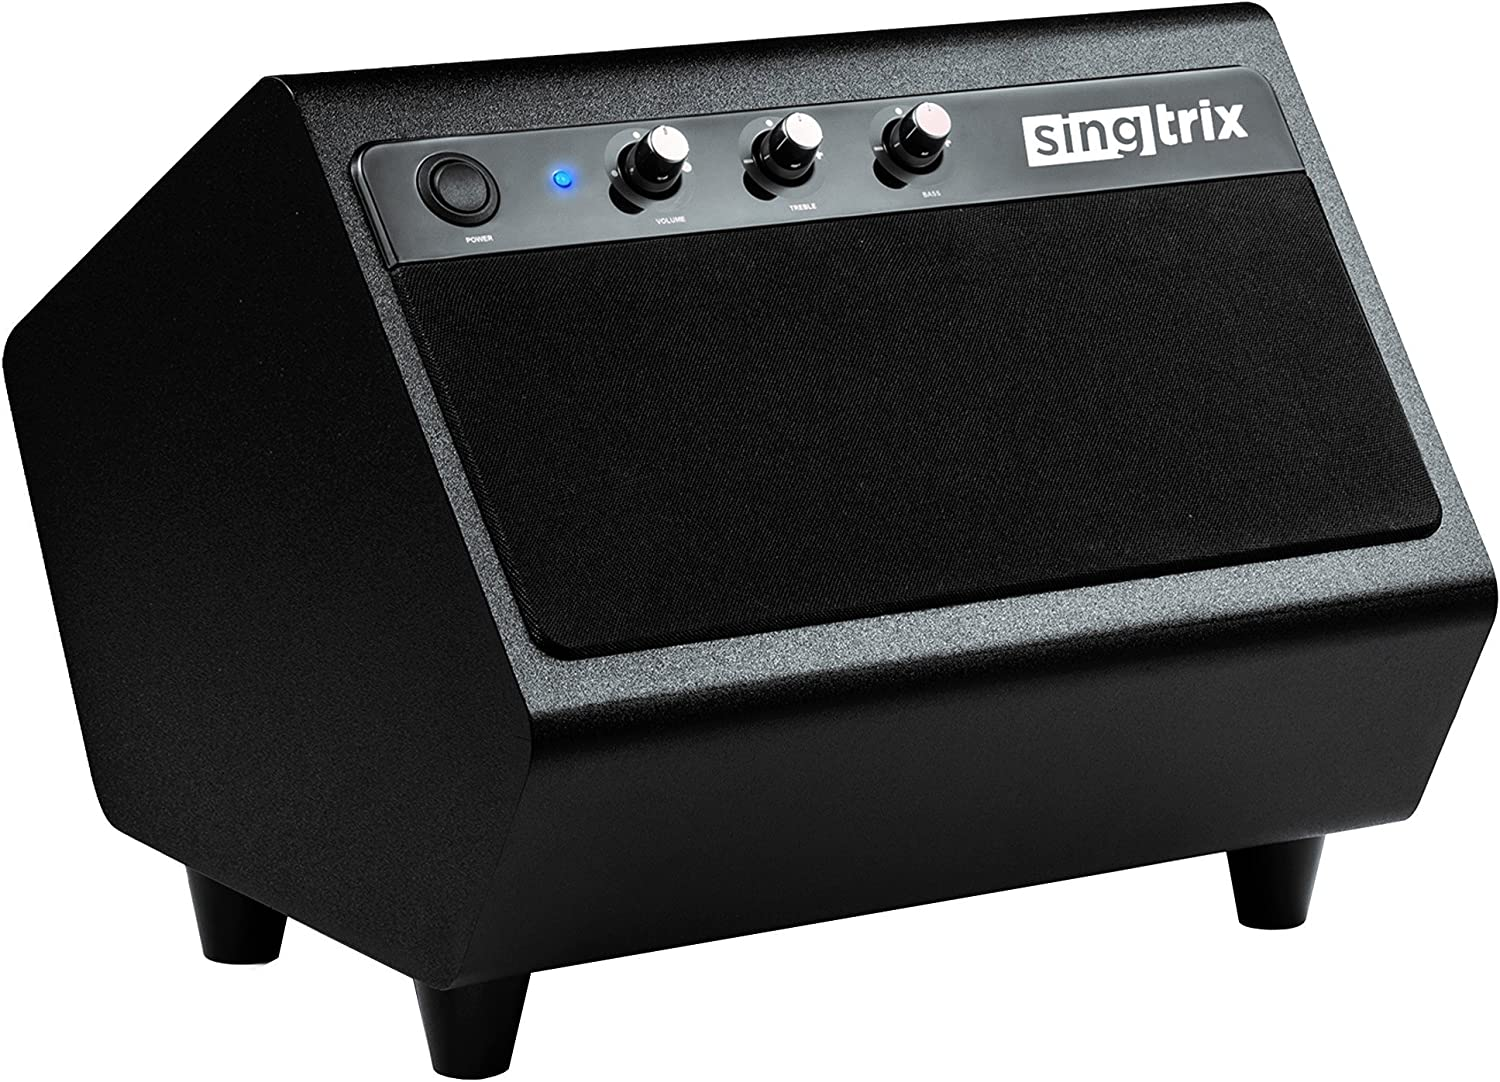 Singtrix Smart Karaoke System Additional Features 40 Watt Speaker with Pro Stereo Sound, Powerful Built-in Subwoofer, and Customizable Controls (SGTXSPK1)